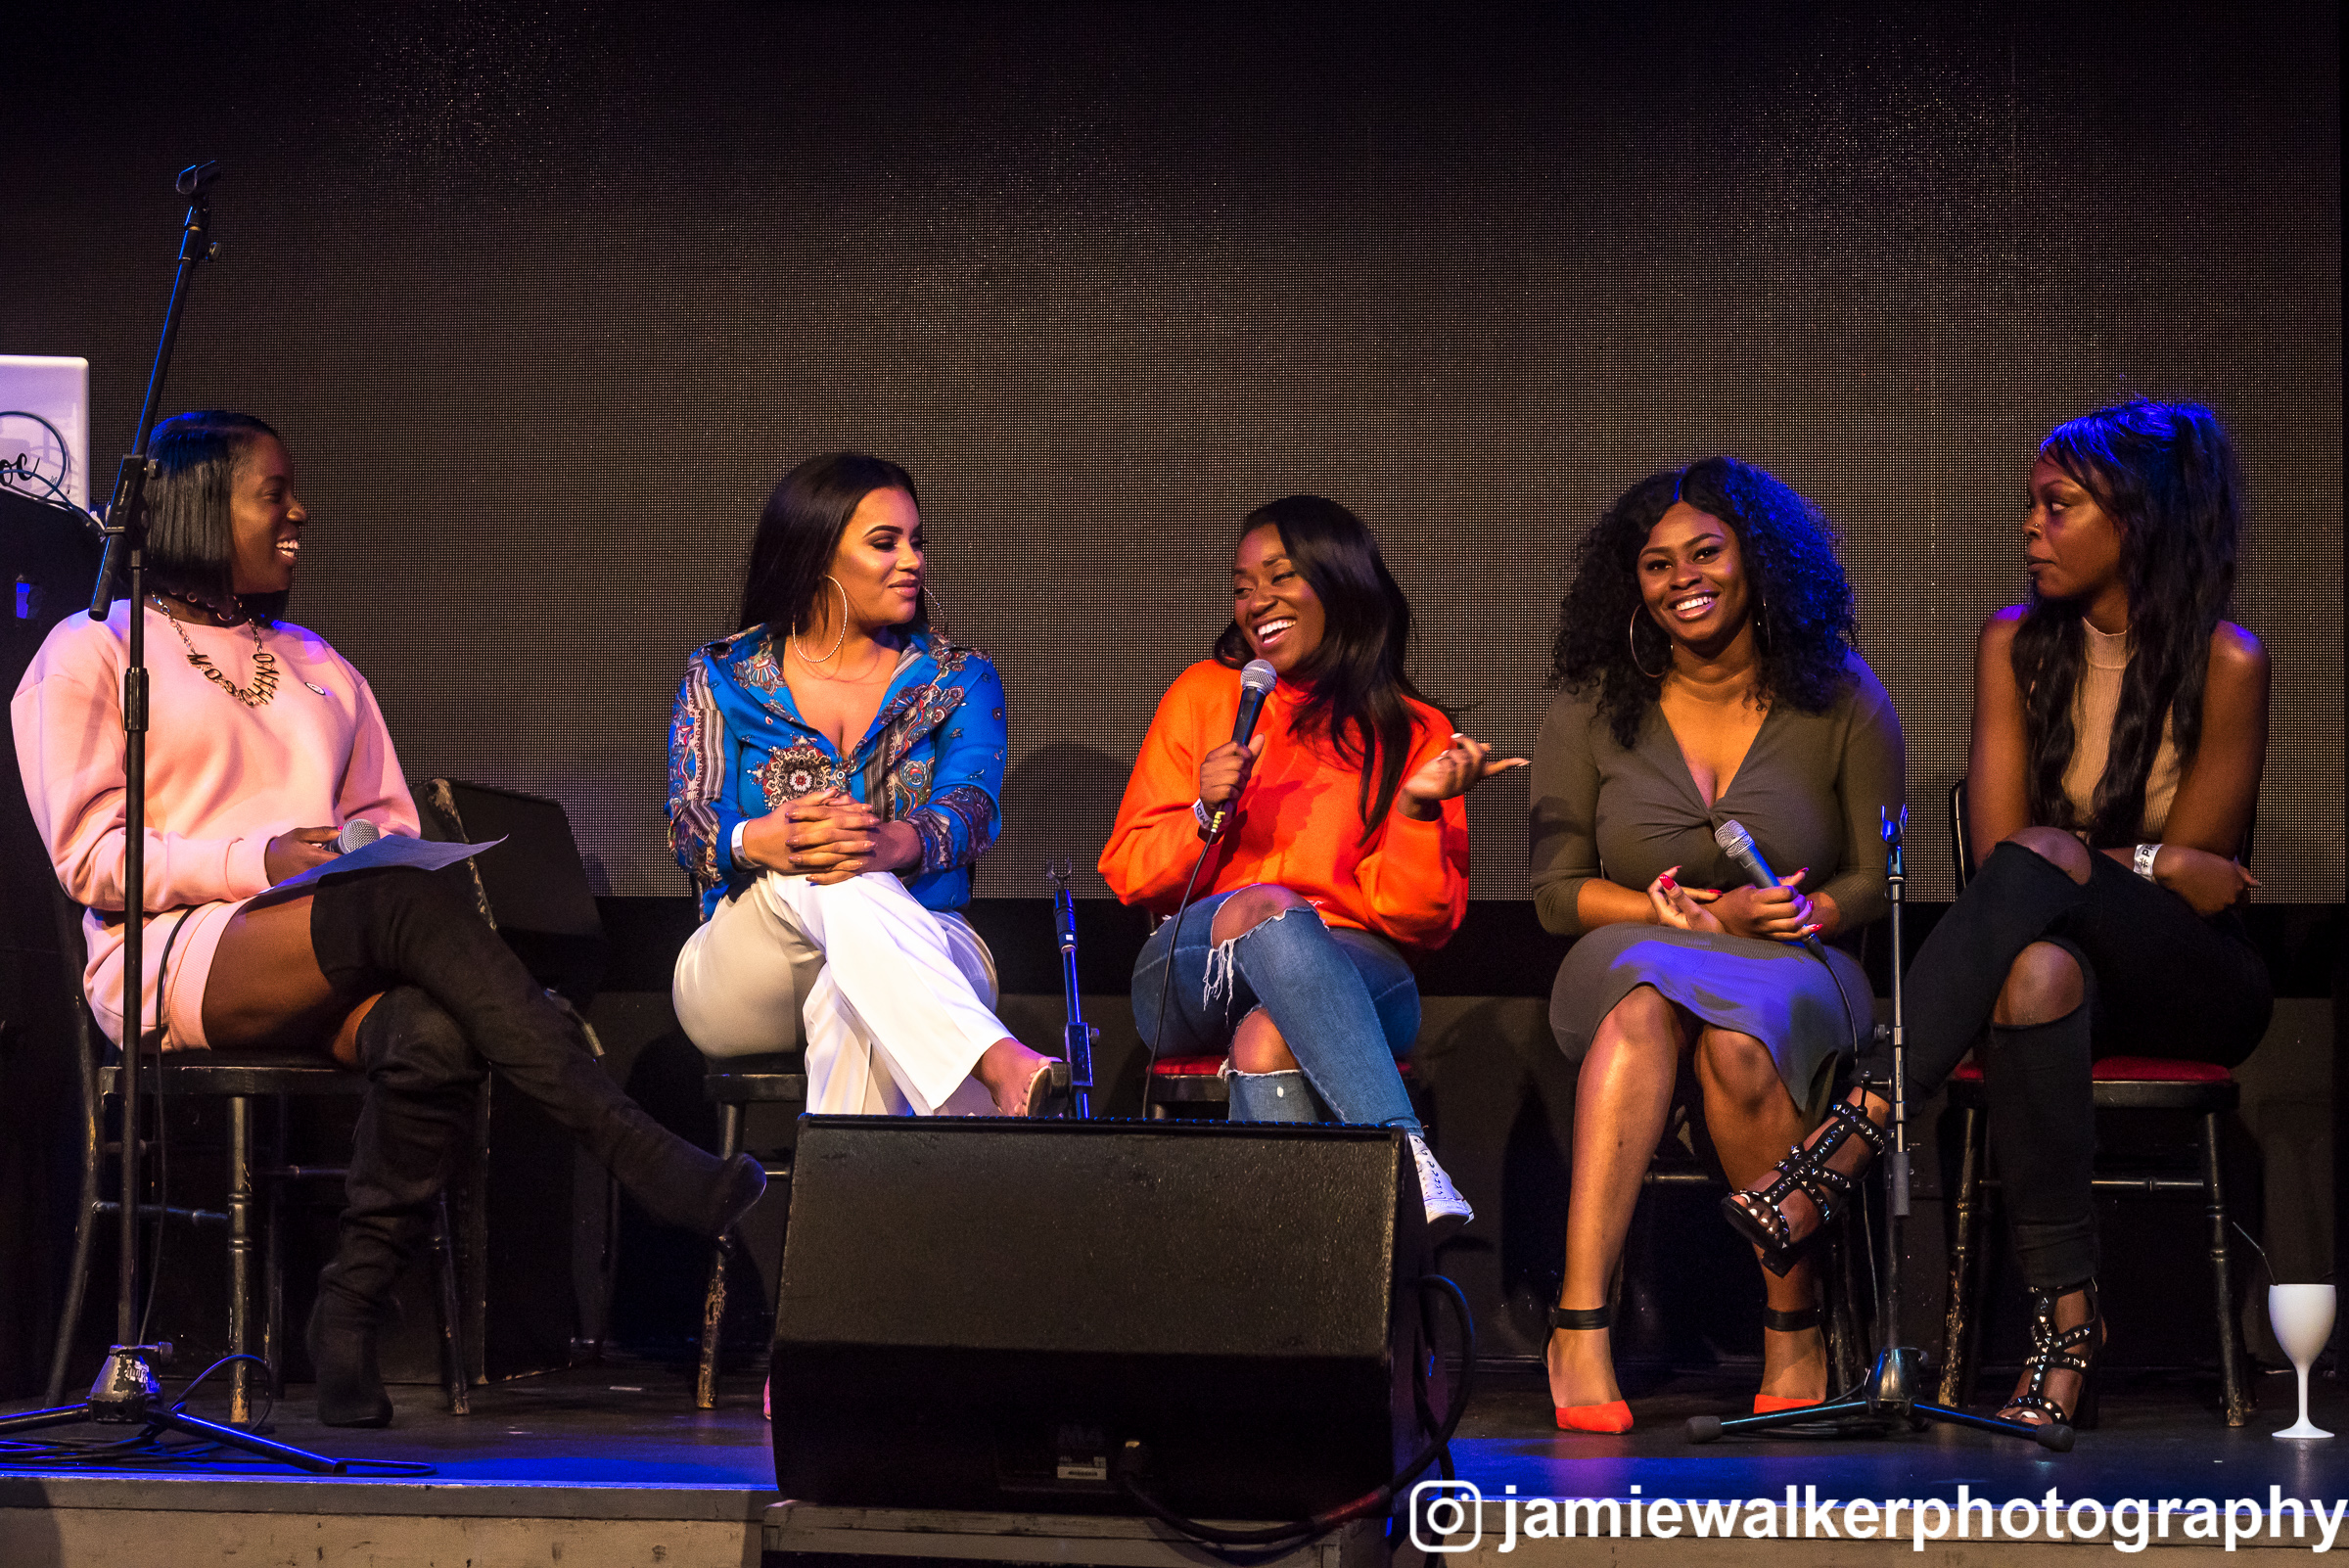 In September 2017 we held our Female Hustler launch party at Proud Camden of which we had an amazing panel of business women including Link Up TV editor and Bitchy Online UK founder Wardah Sempa, Partnerships Manager of Asos and Founder of Life Talks UK Velma Simmons, Founder of Digital Marketing Agency PinkShip Patrice Camille and Owner of Baby On Trend / Reality TV Star Lateysha Grace.   Latesyha was filming with MTV UK for her new show Million Dollar Baby and tonight at 8pm you will be able to see what went down at our event on the show!   Enjoy!